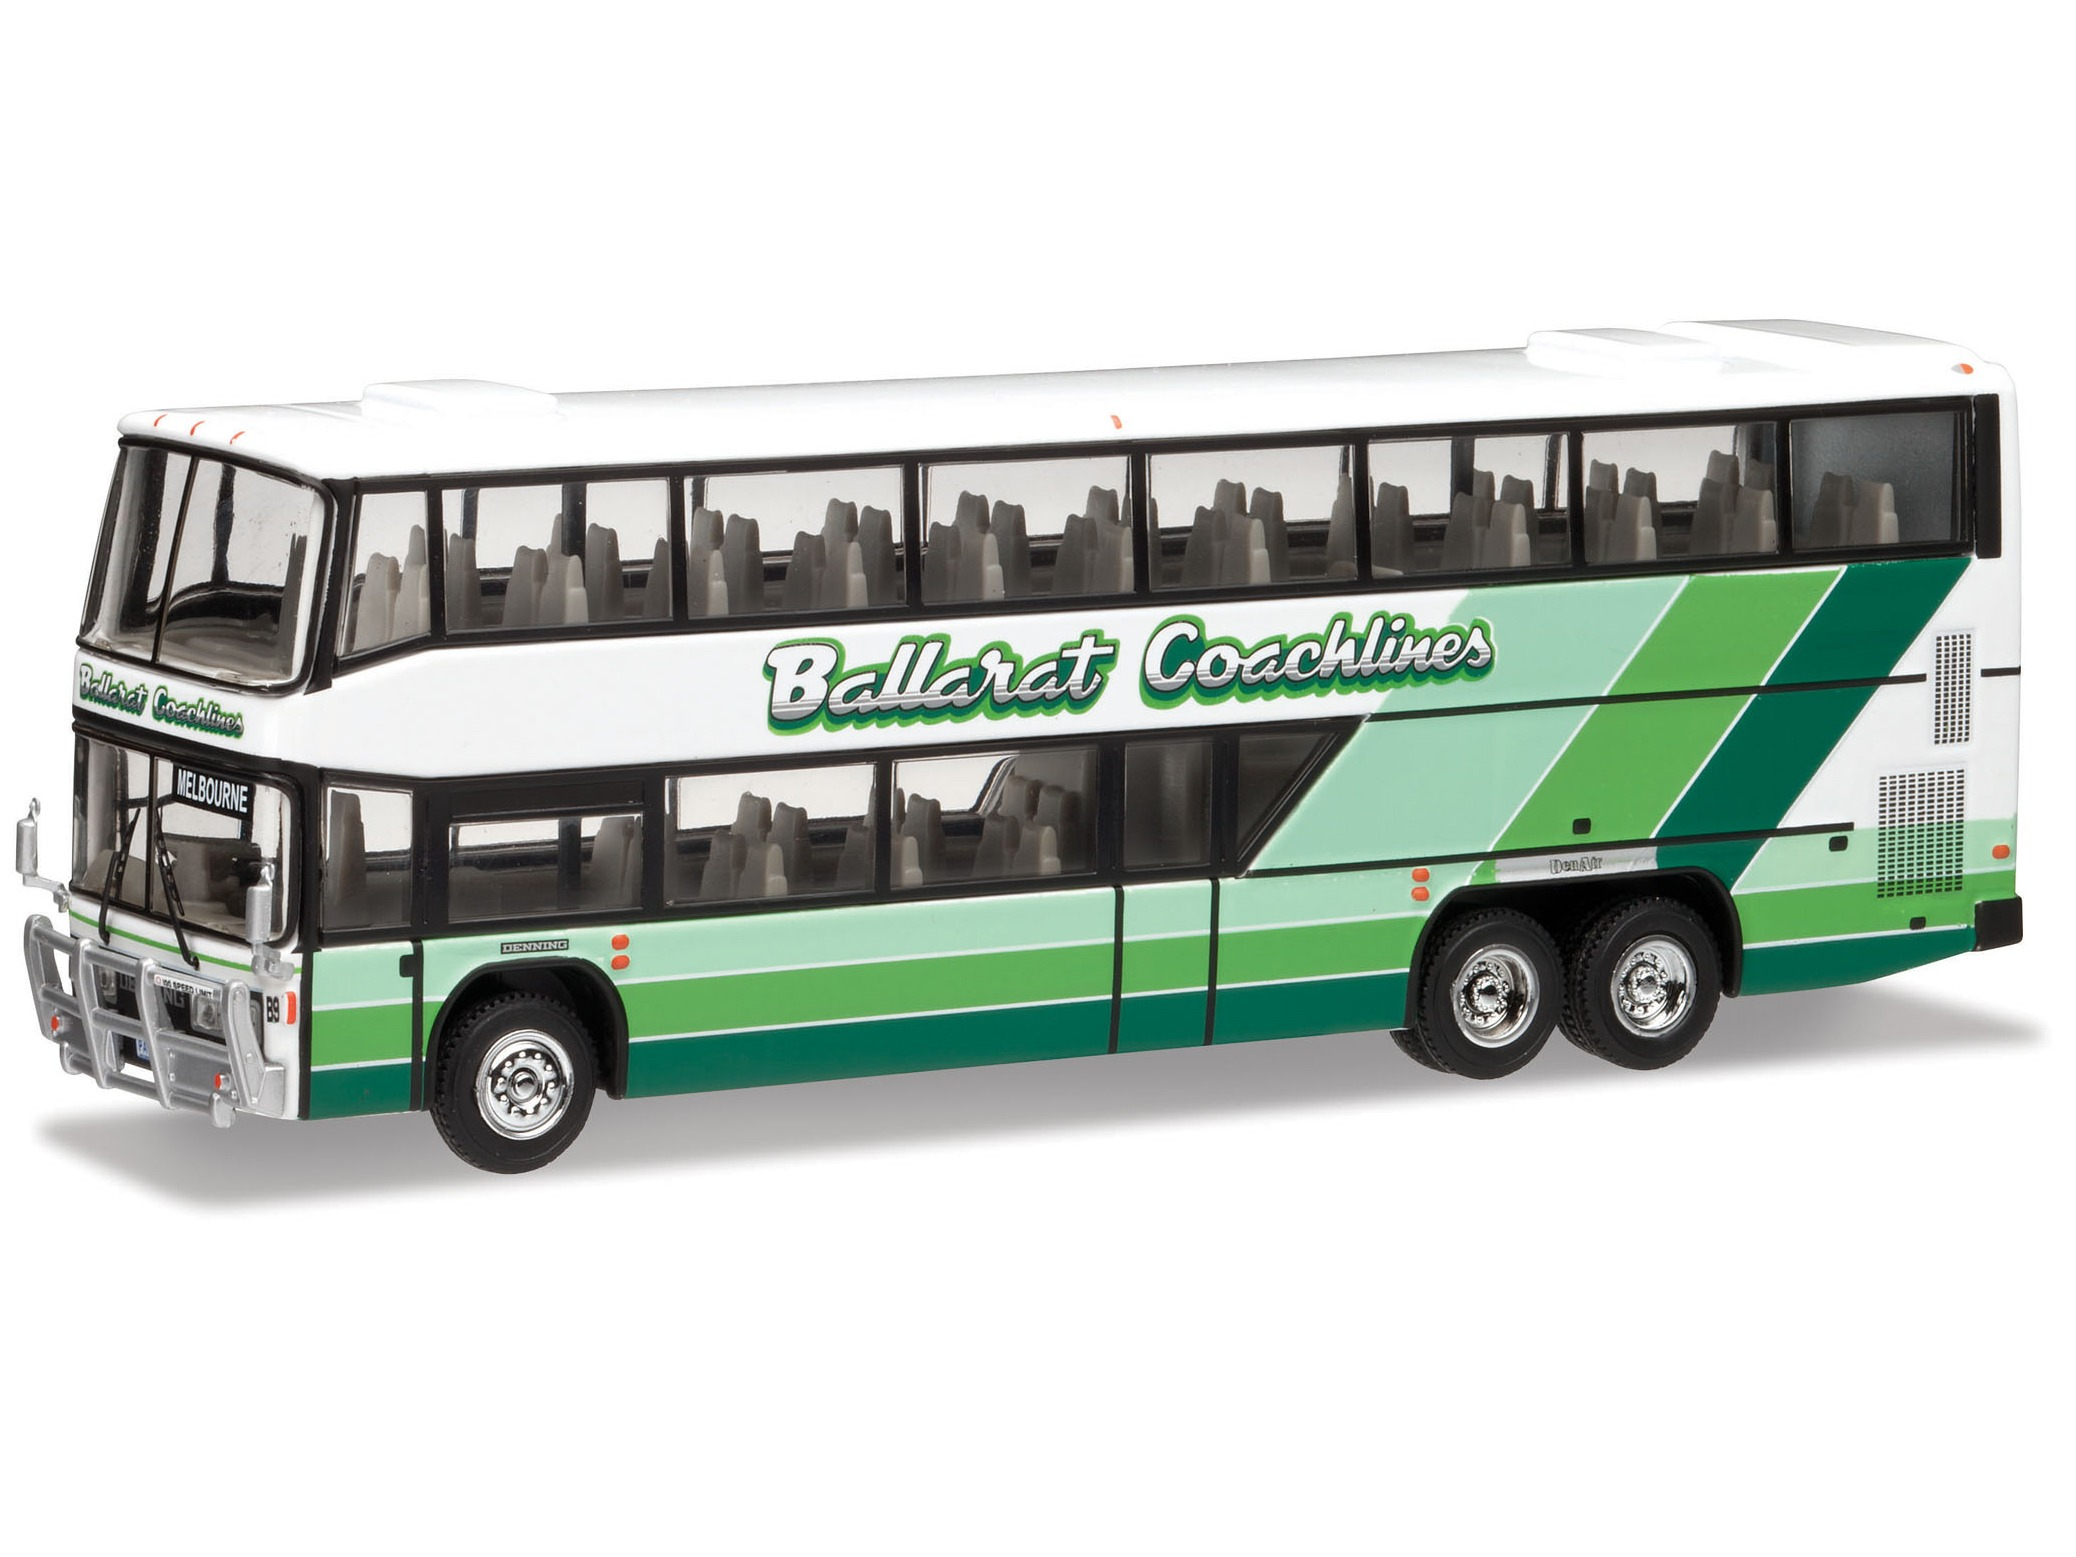 1988 Denning Double Decker Coach – Ballarat Coaches